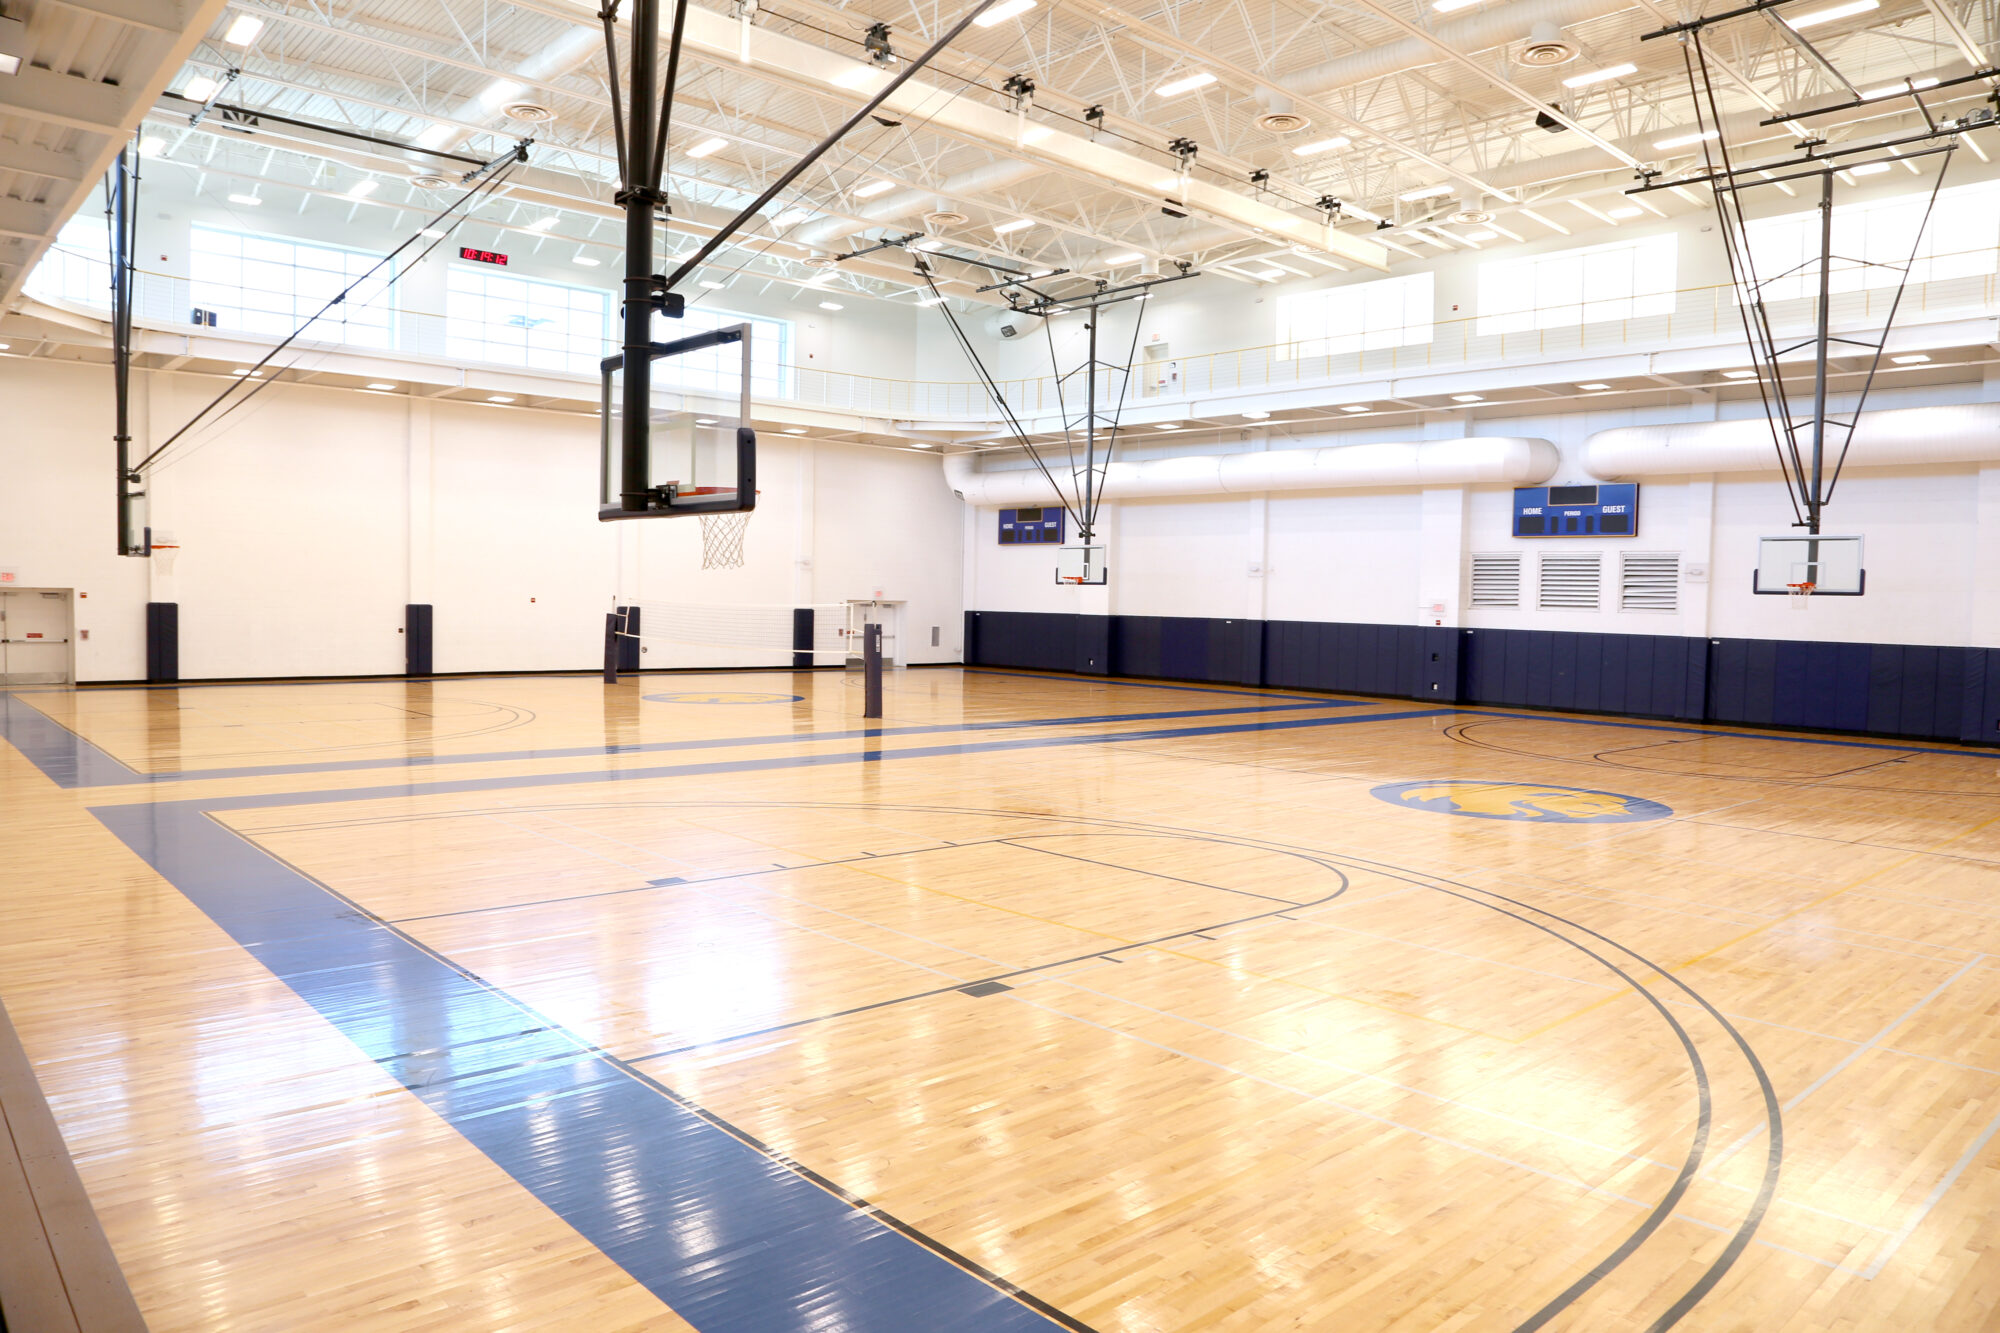 Indoor basketball court at the Morris Recreation Center.